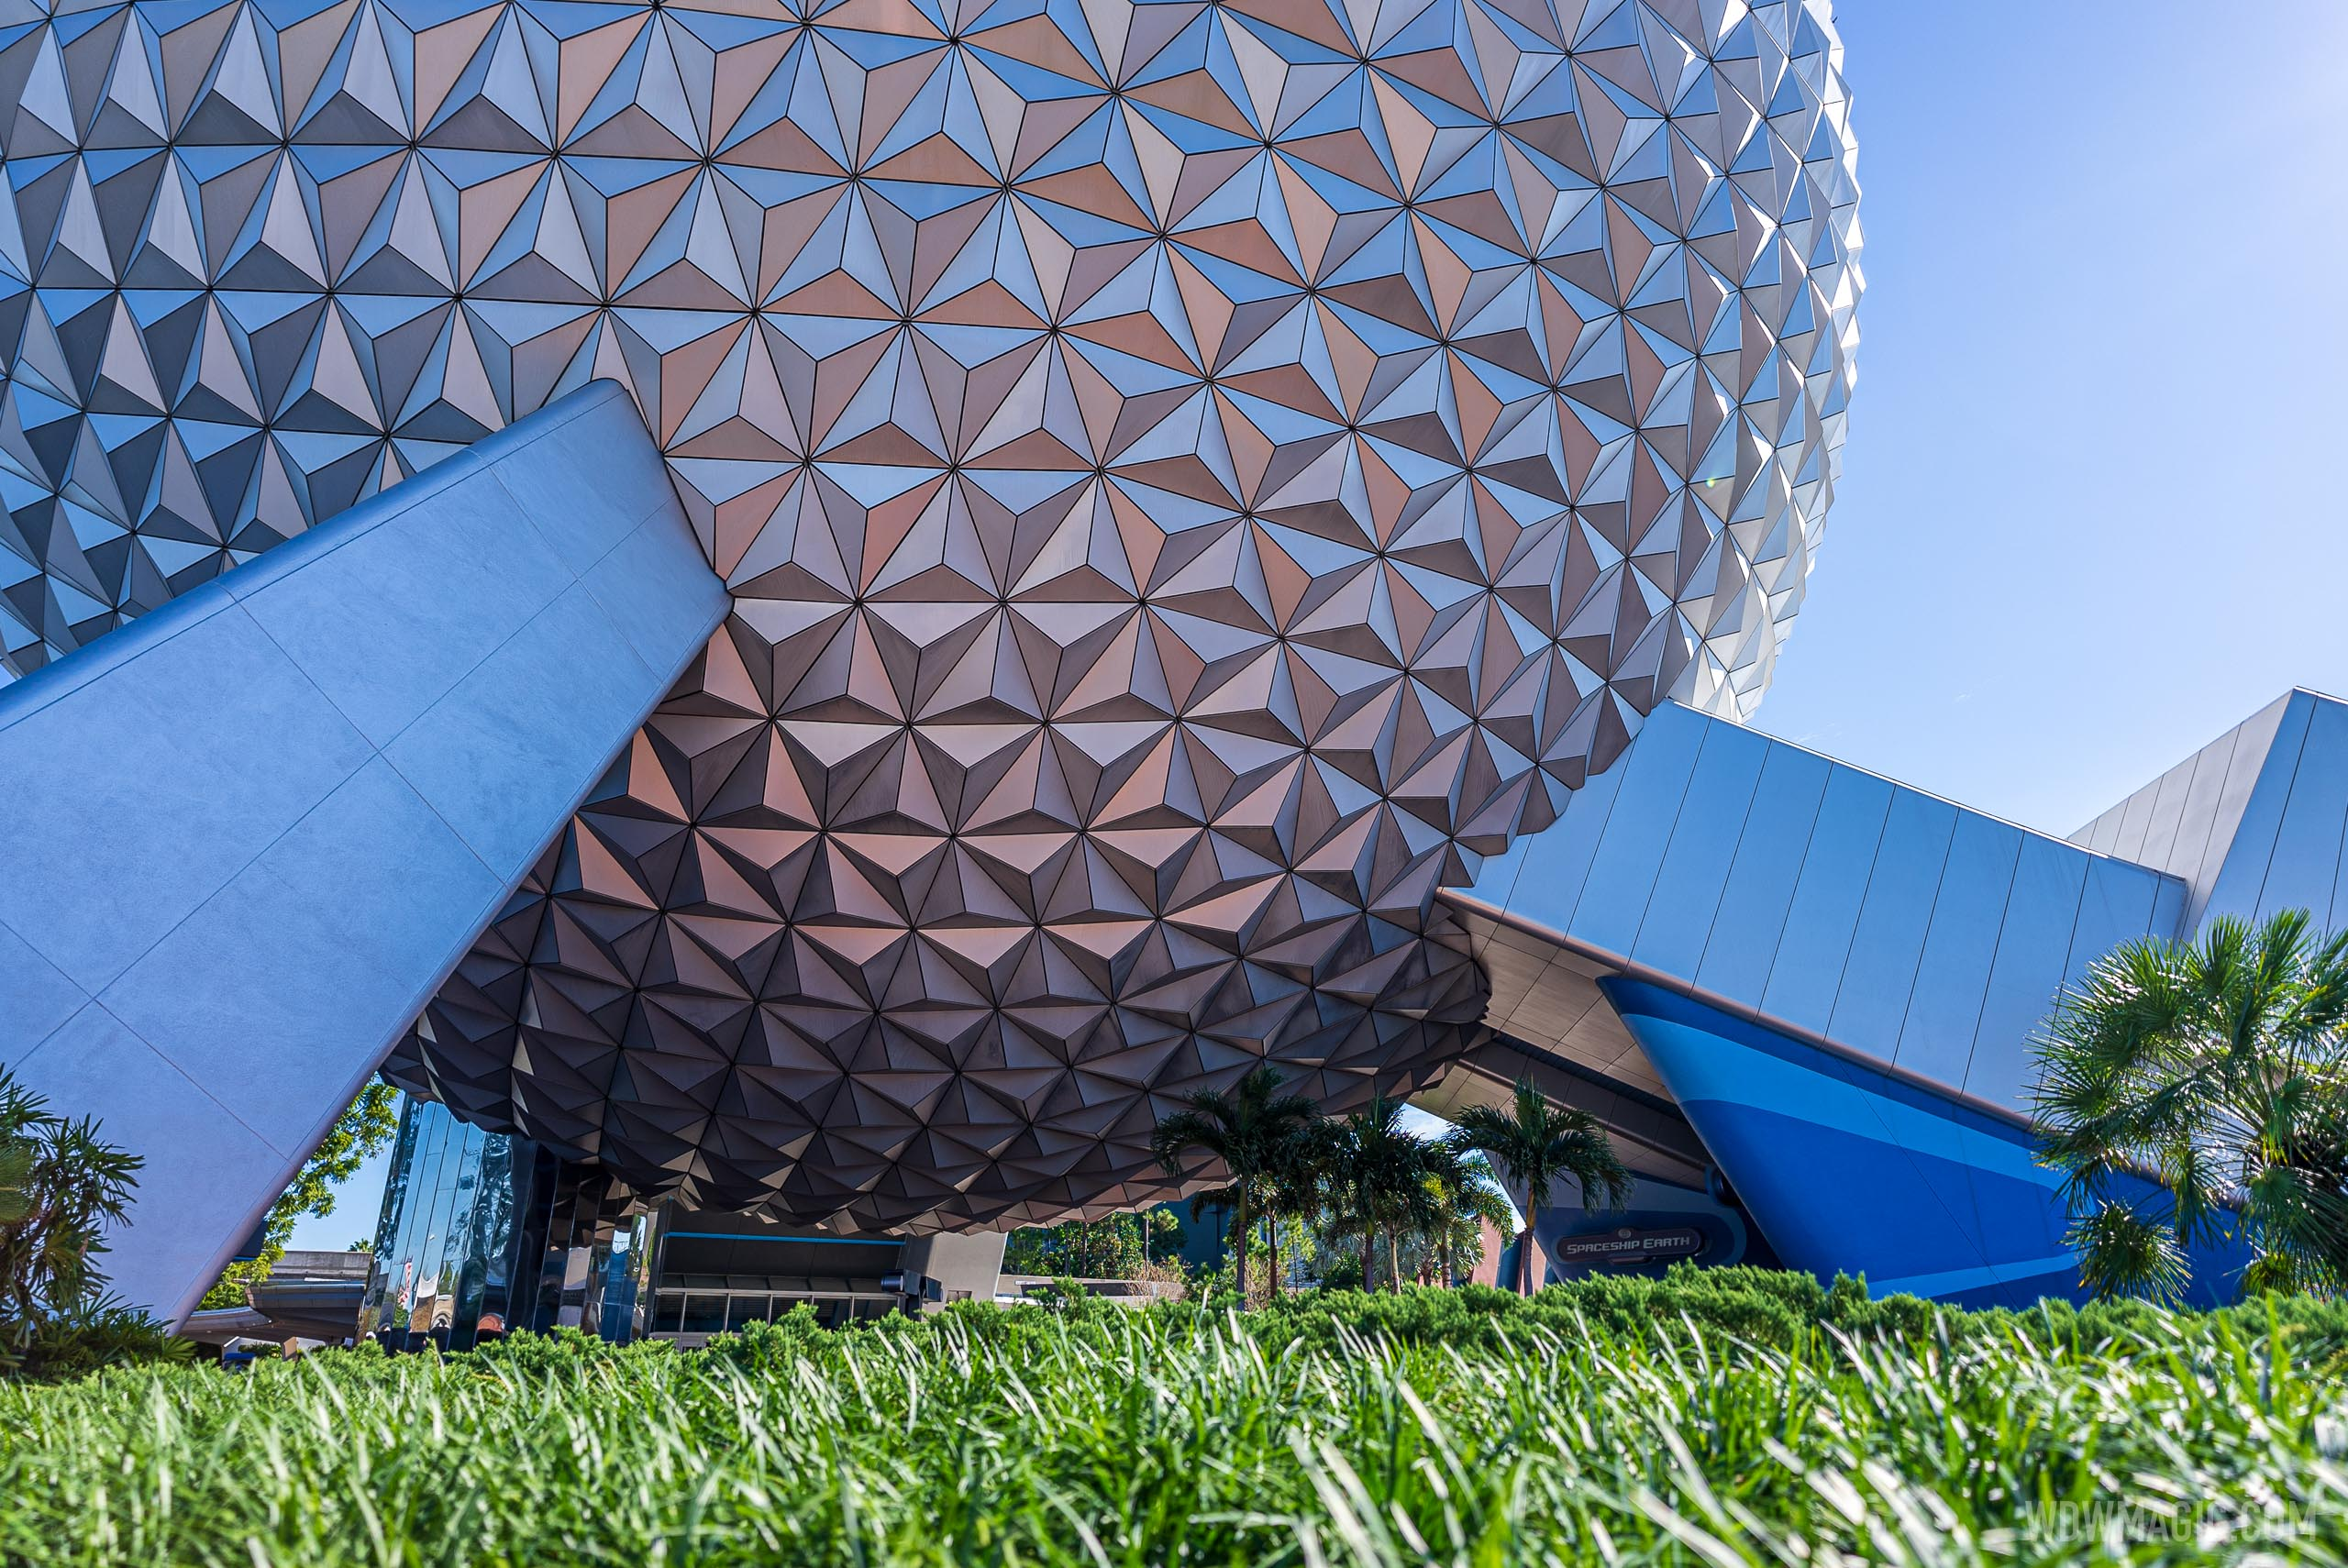 EPCOT gains 4 hours a day compared to originally published hours